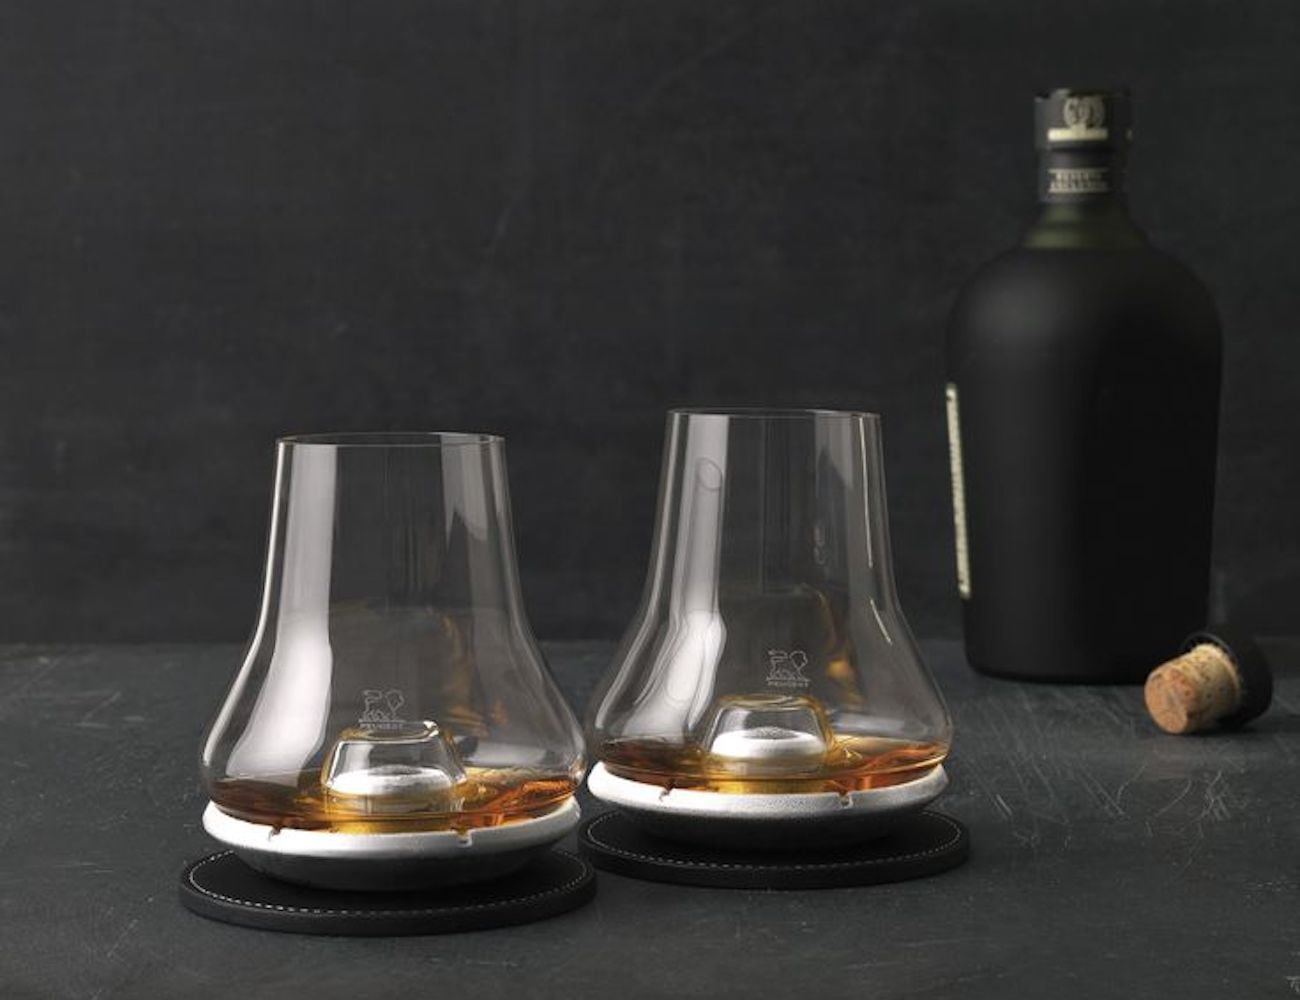 Whiskey Tasting Glass and Chilling Coaster